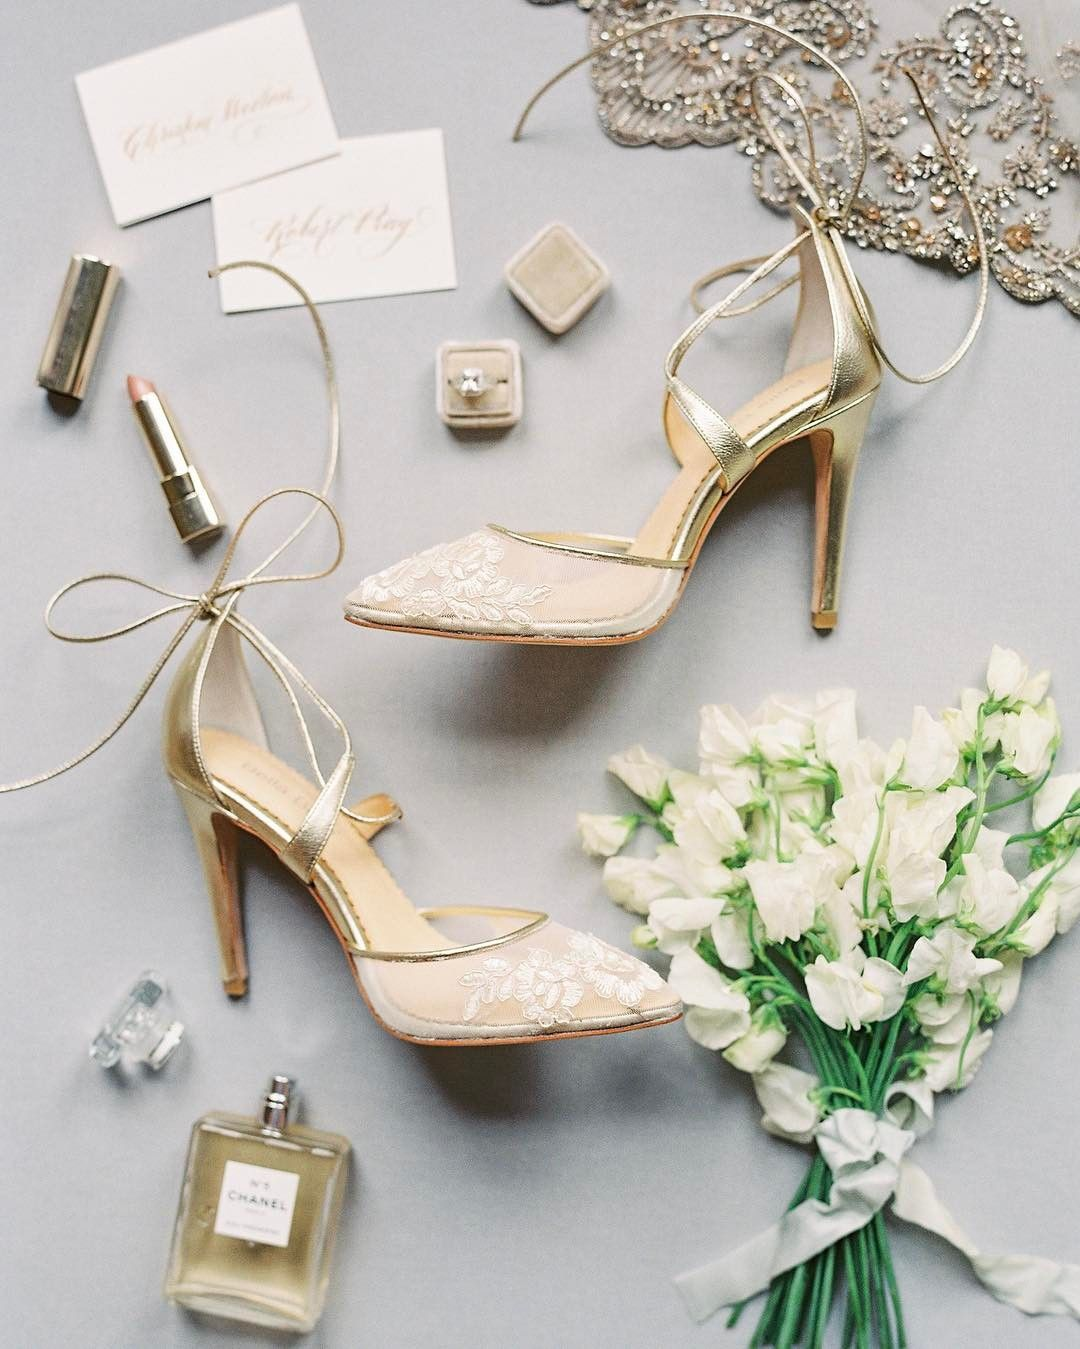 a64807298 A bridal accessories  flatlay is a wedding photography must-have! Taking  major  inspo from this shot in  bellabelleshoes s latest lookbook!